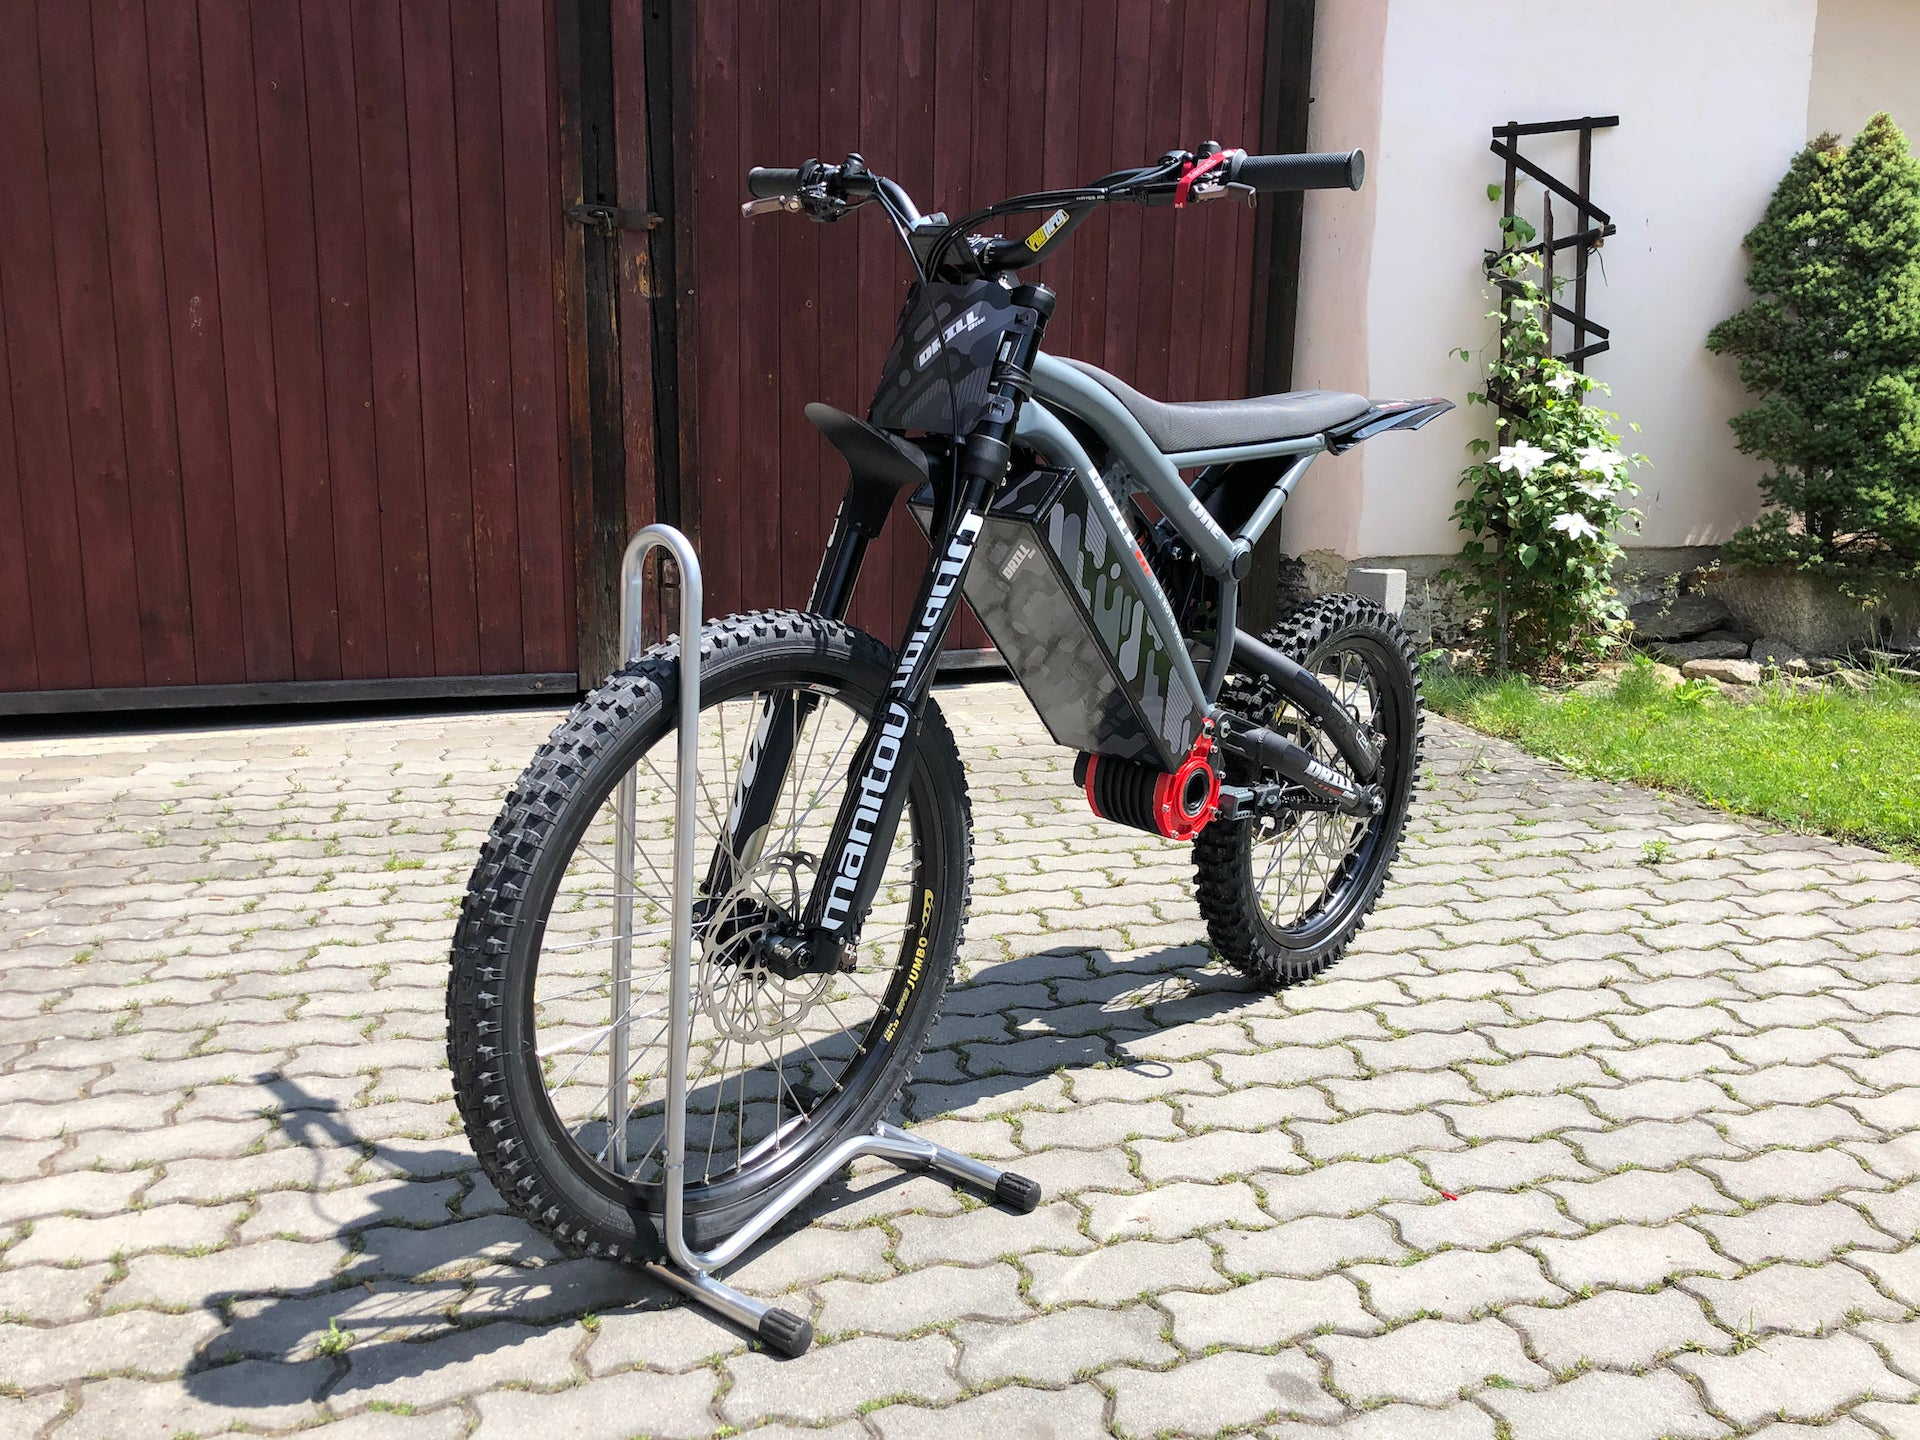 Side View Drill One Electric Dirt Bike For Sale